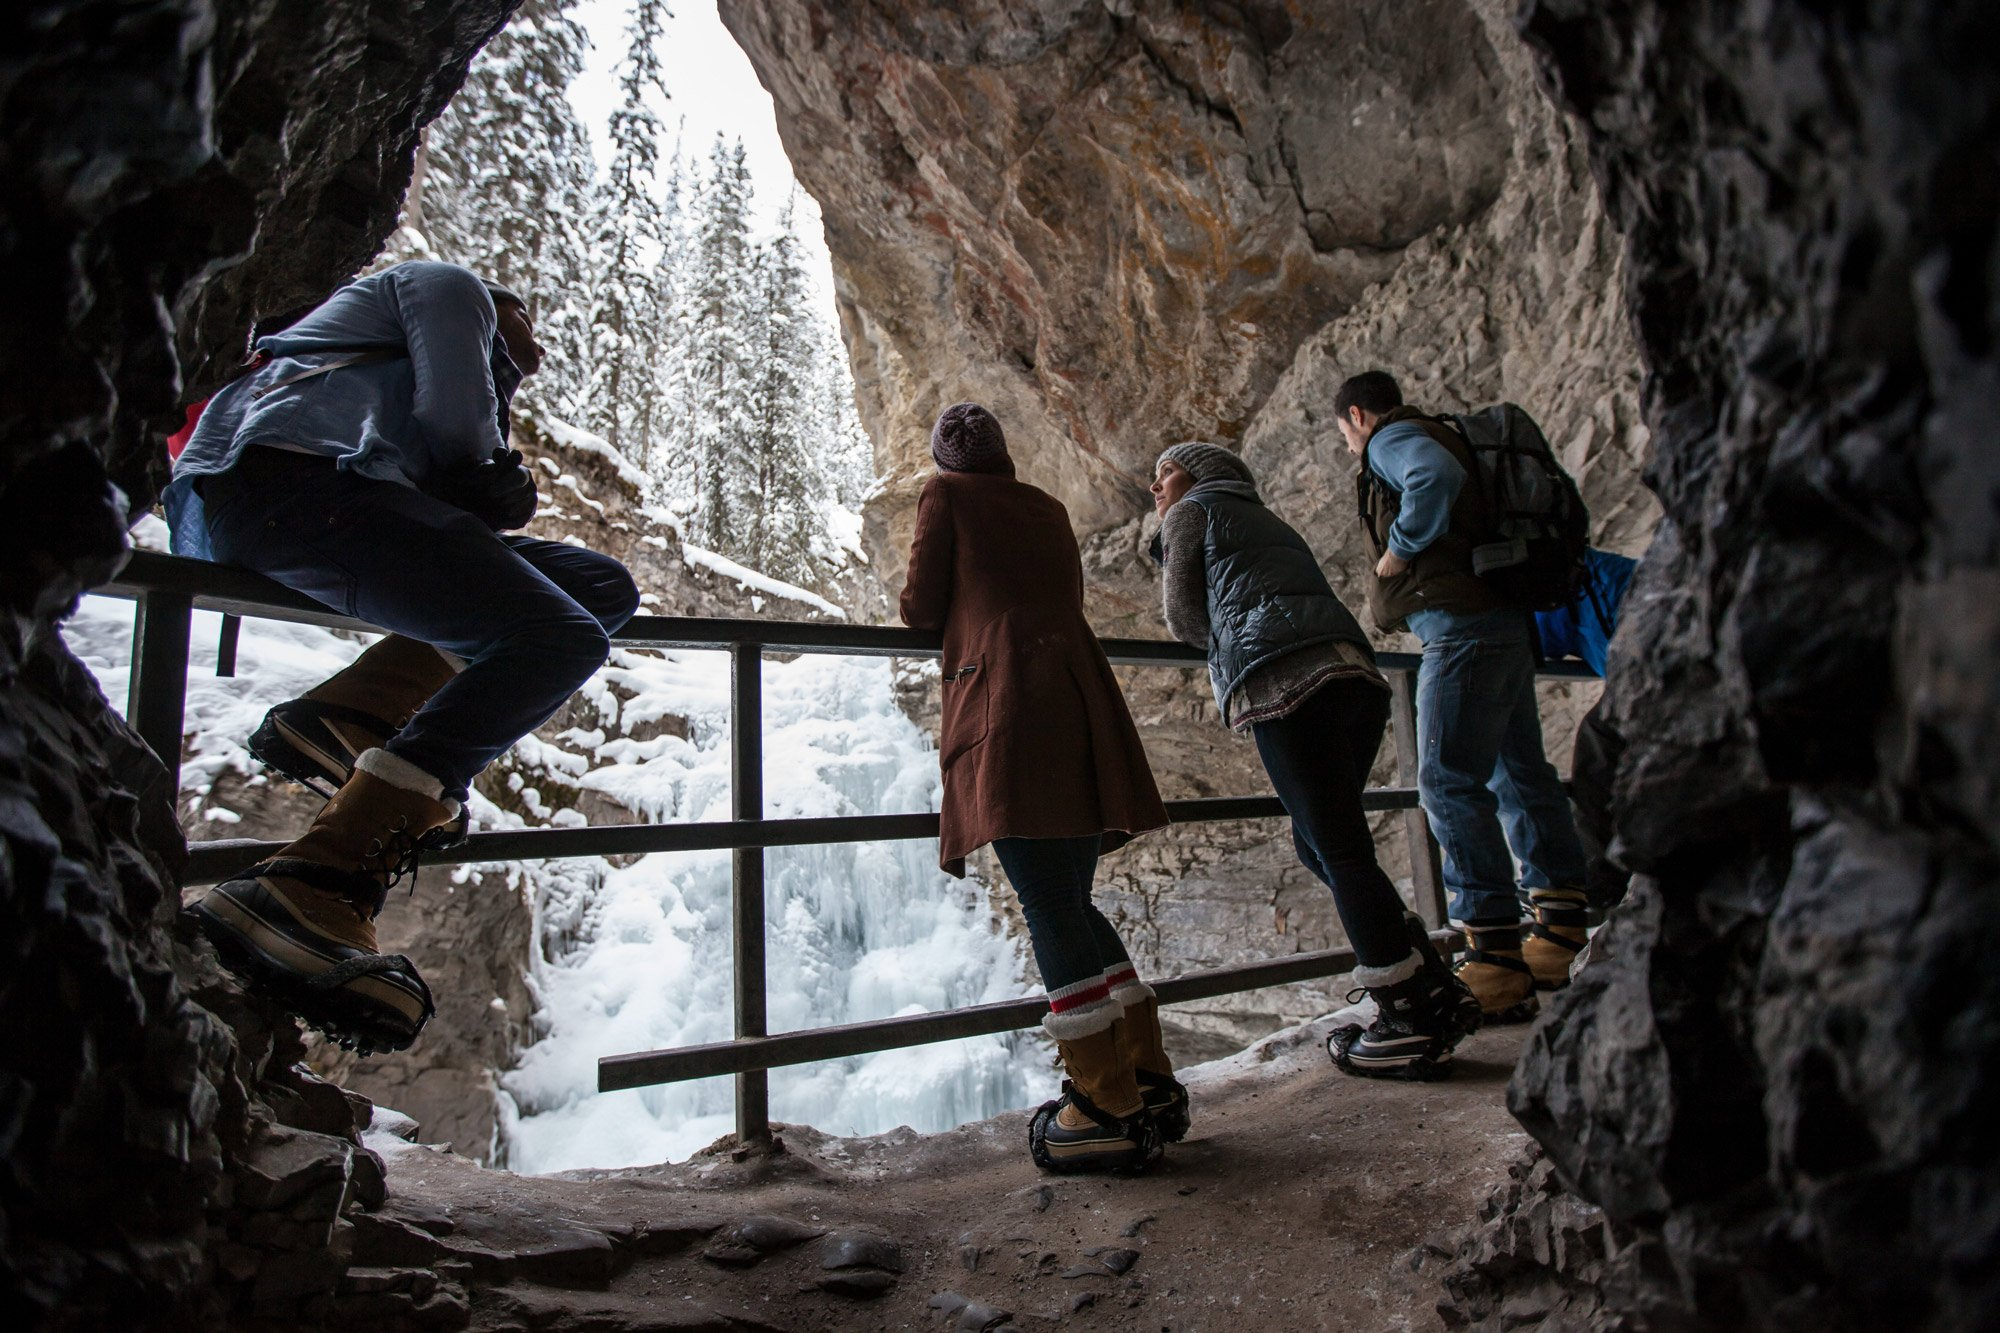 A group pauses in a cave along the Johnston Canyon ice walk in Banff, AB